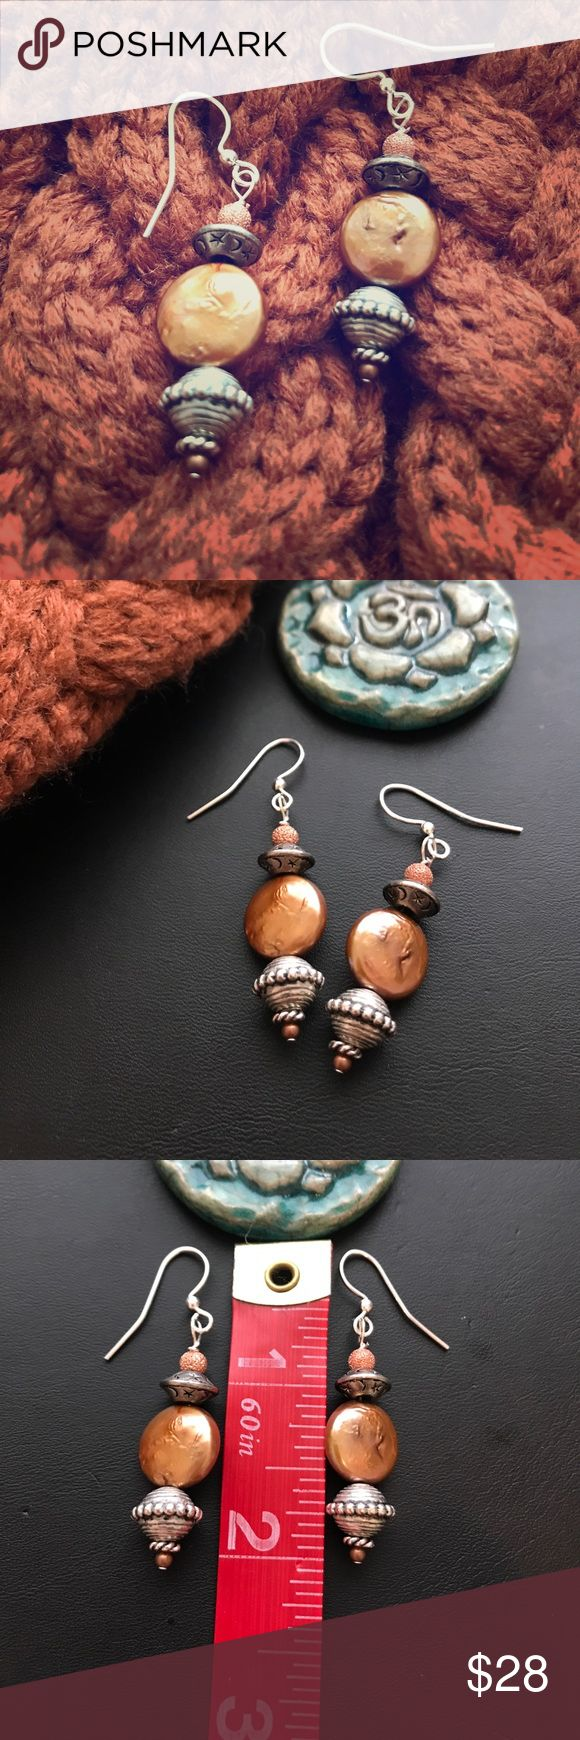 """•Harvest Moon Pumpkin Color Fall Pearl Earrings• Created & made by me using round """"sister coin pearls"""". Genuine Coin Pearl, Stardust Copper Beads at the top & Silver saucer beads adorned w/ Moons & Stars (shown in last pic so you can see detail. Finished w/ a shepards hook style ear wire. Around 2"""" Long, total length, matches perfect w/ Pumpkin Color Braided Knit Hat listed separately in my closet (pic 2) Upcycled/Moon/Stars/Fall/Pumpkin/Pearls Touched By The Sun Jewelry Earrings"""